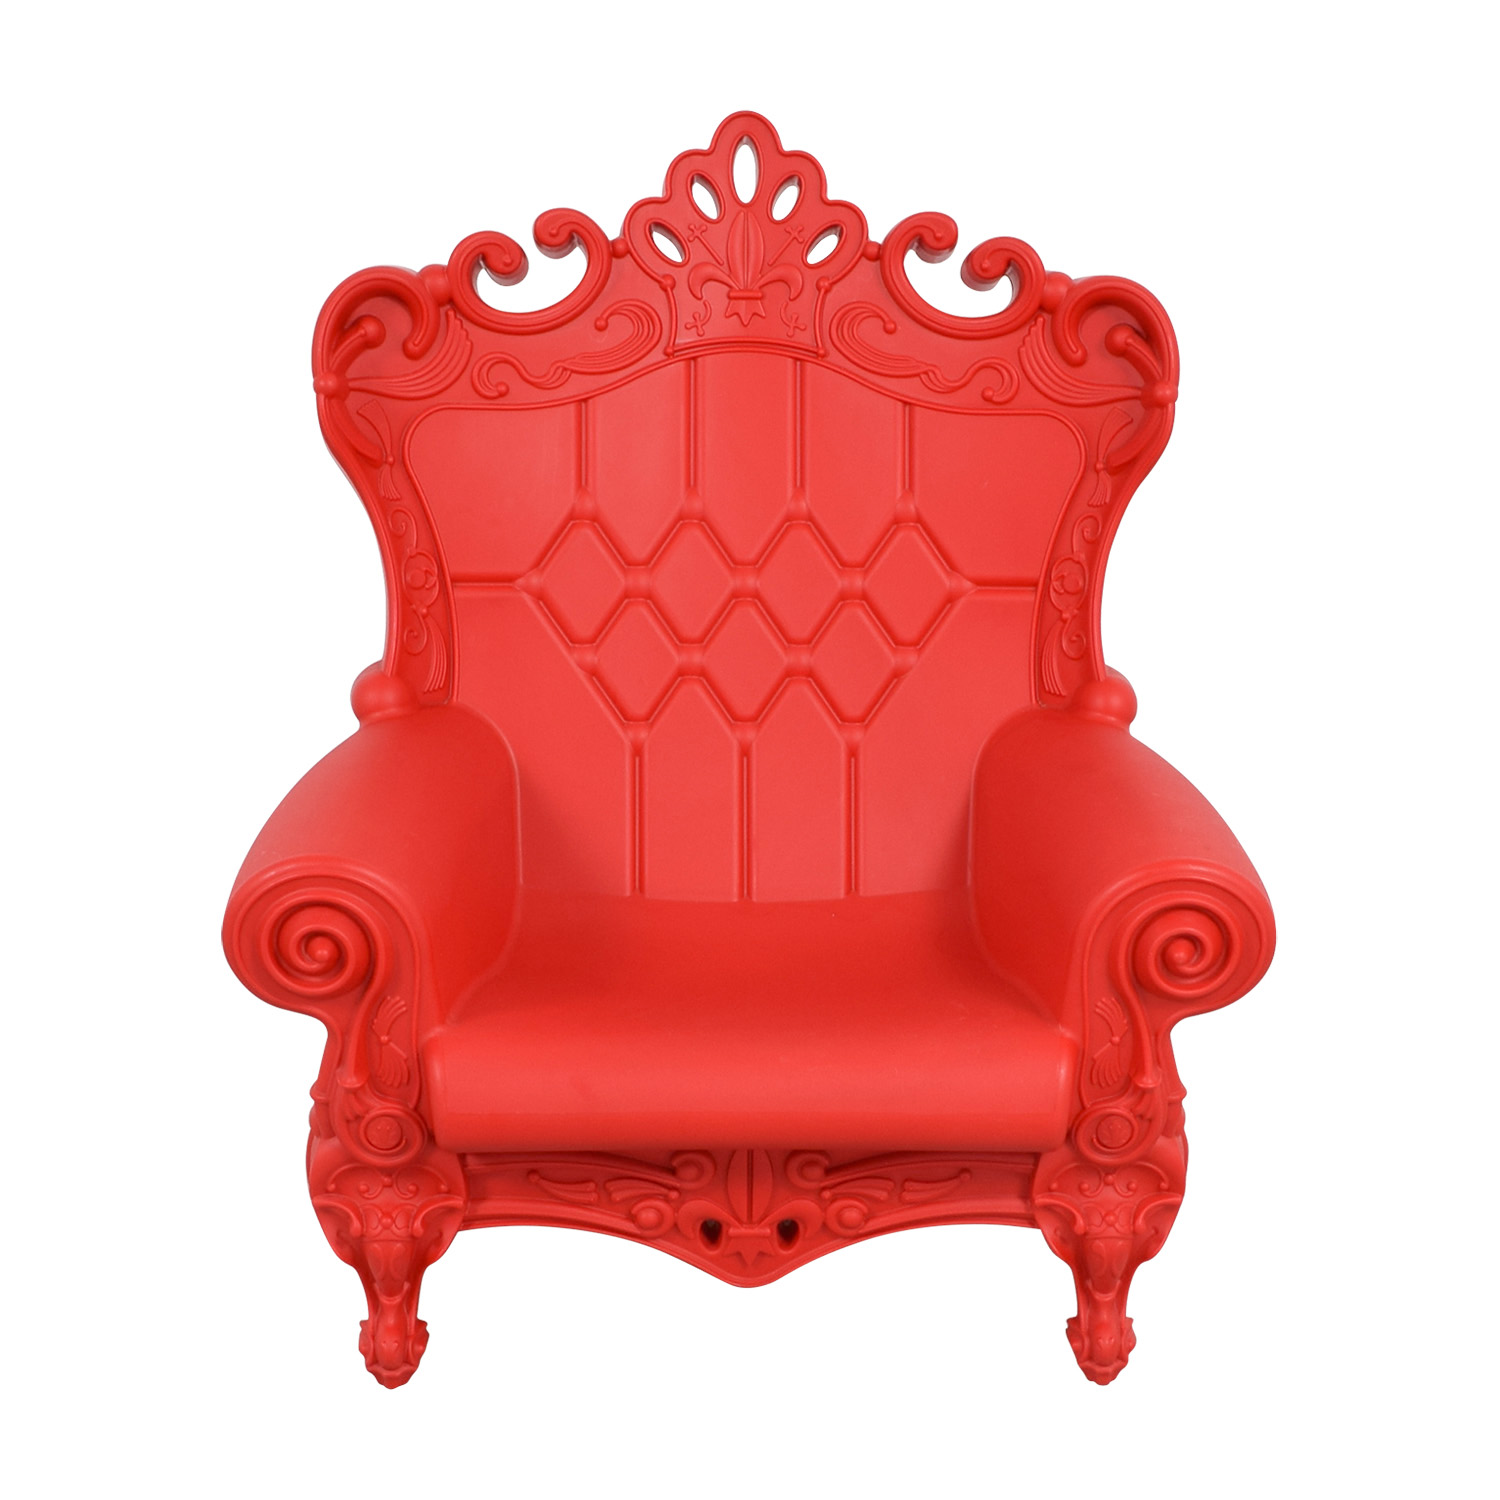 Linvin Linvin Queen of Love Chair Red Passion nyc